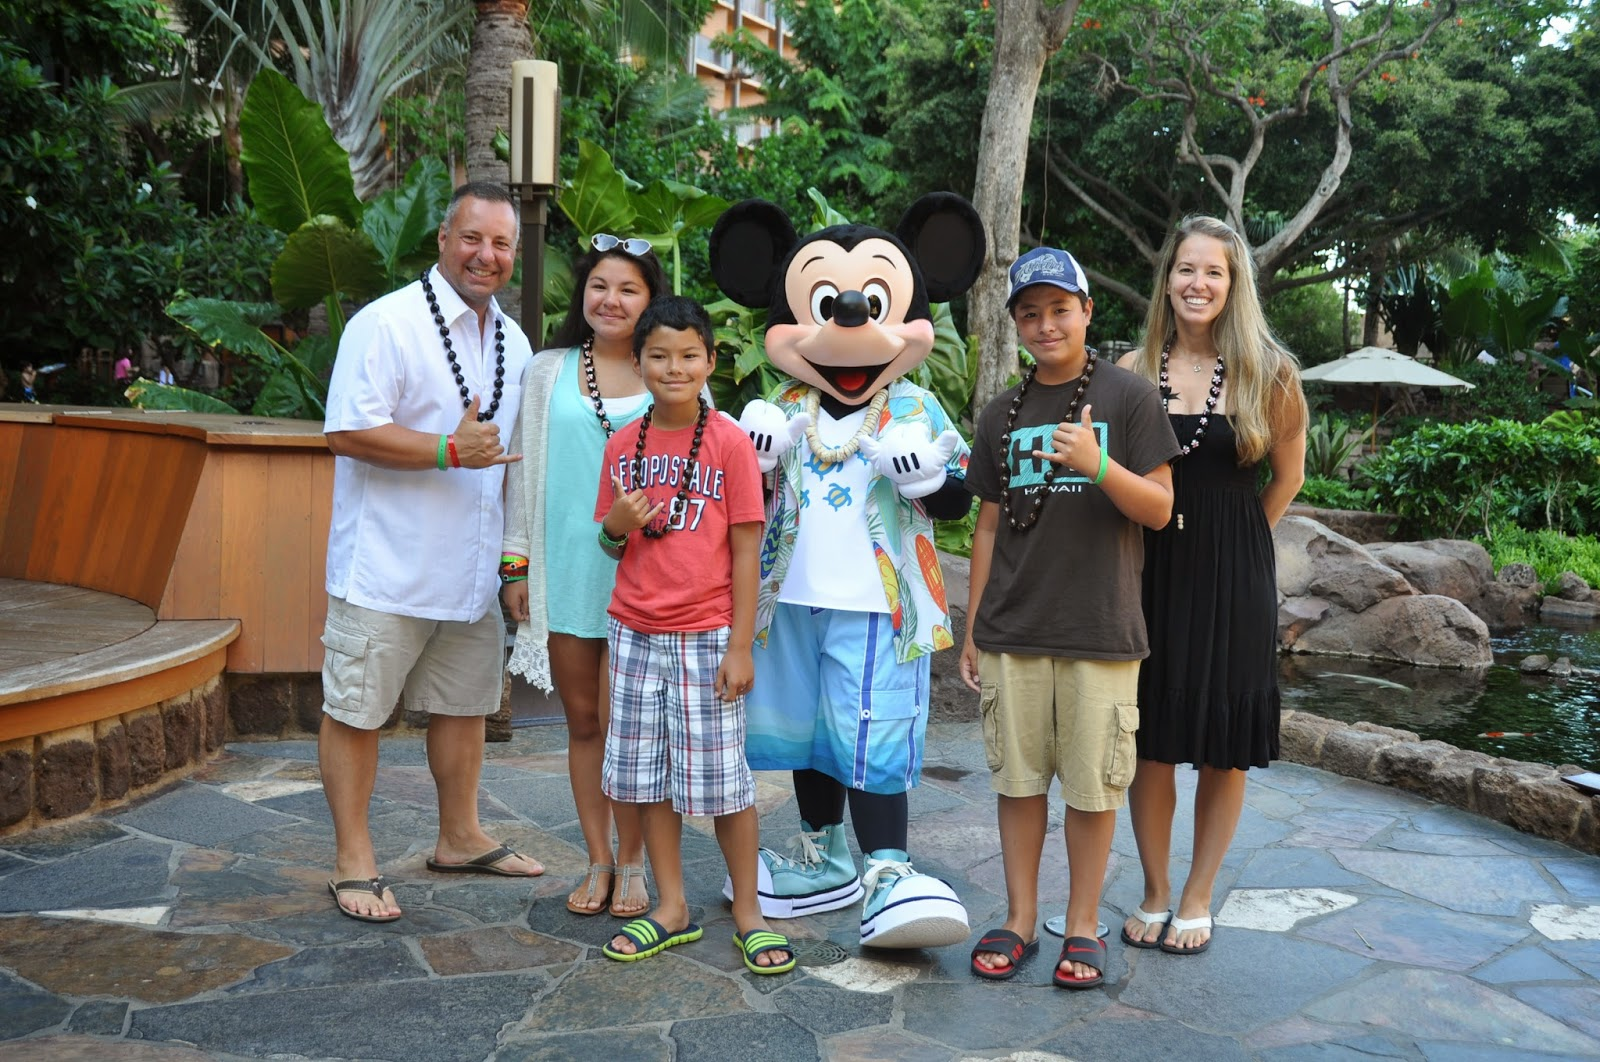 http://mommy-dreaming.blogspot.com/2014/08/aulani-hawaii-family-vacation.html